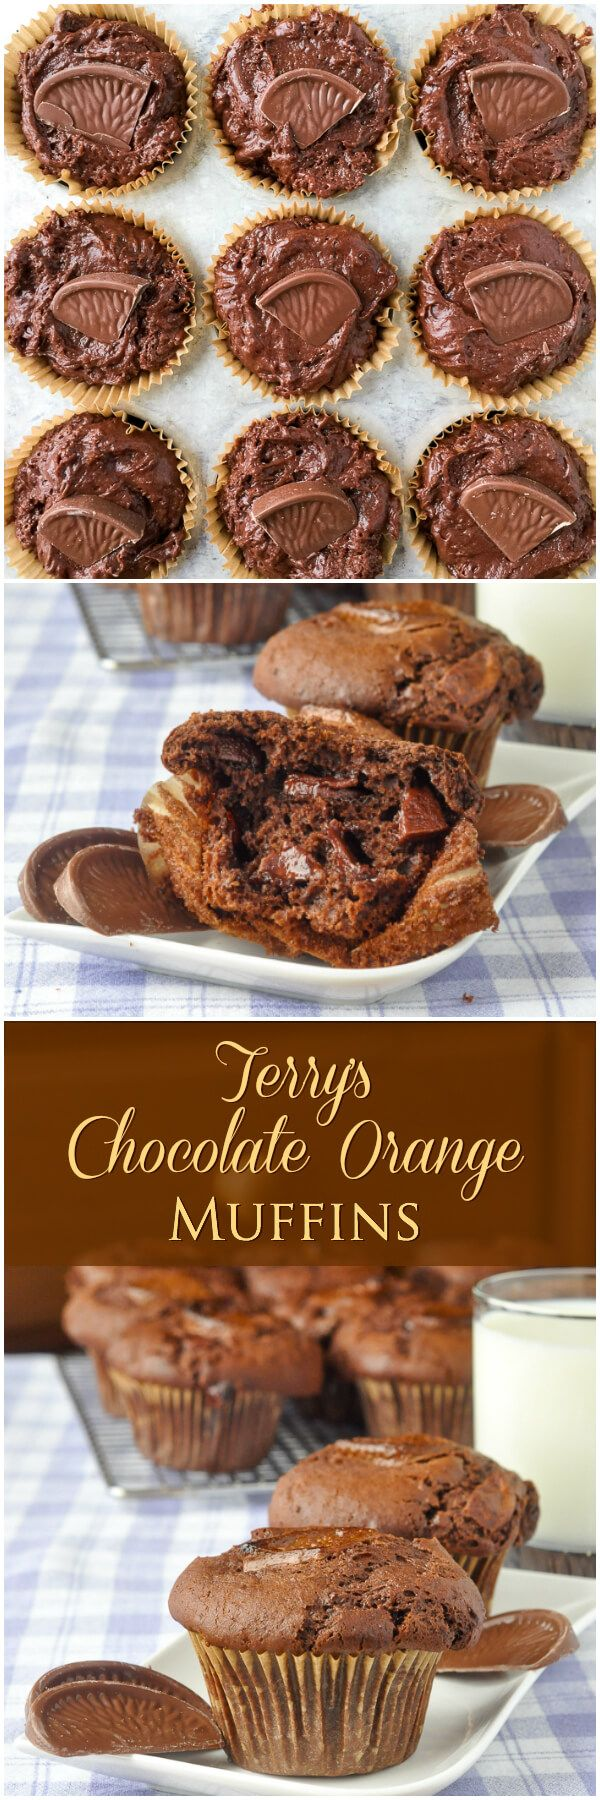 Best 25+ Terry's chocolate orange ideas that you will like on ...